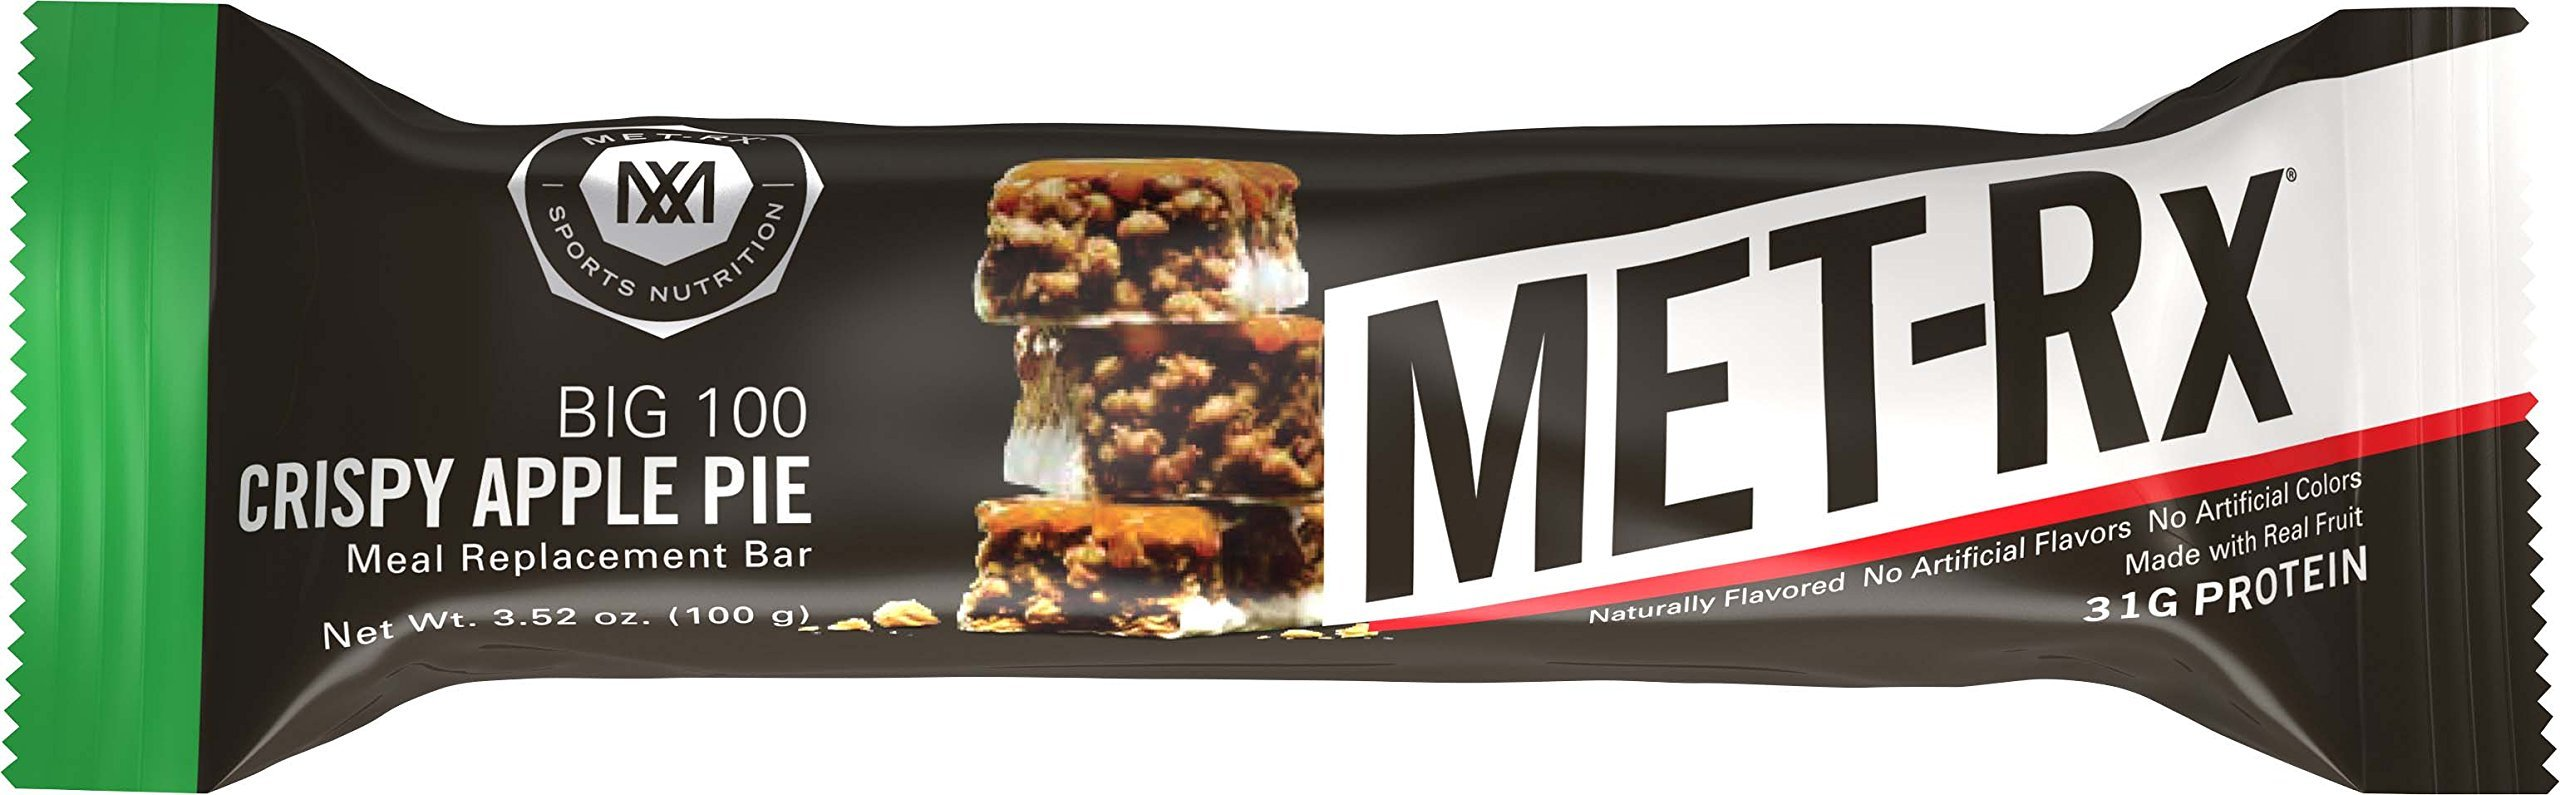 MET-Rx Big 100 Colossal Protein Bars, Great as Healthy Meal Replacement, Snack, and Help Support Energy, Gluten Free, Crispy Apple Pie, 100 g, 4 Count (Pack of 2) by MET-Rx